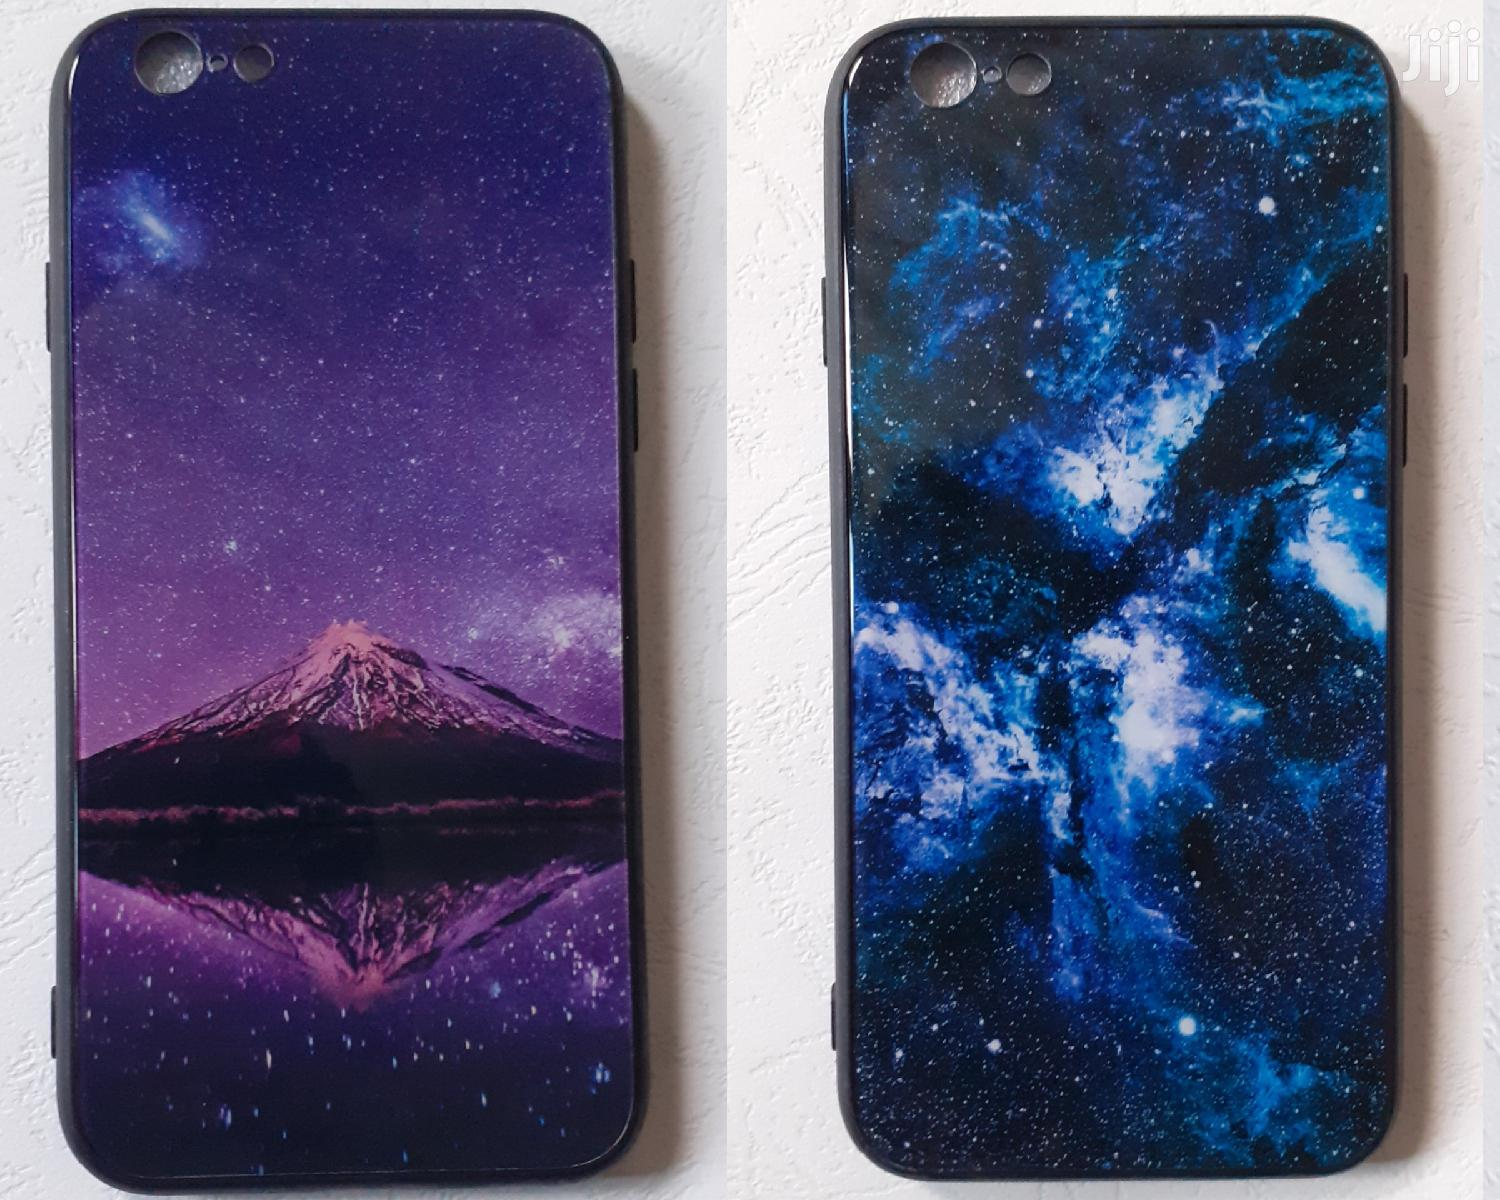 iPhone 6 Covers | Accessories for Mobile Phones & Tablets for sale in Kinondoni, Dar es Salaam, Tanzania